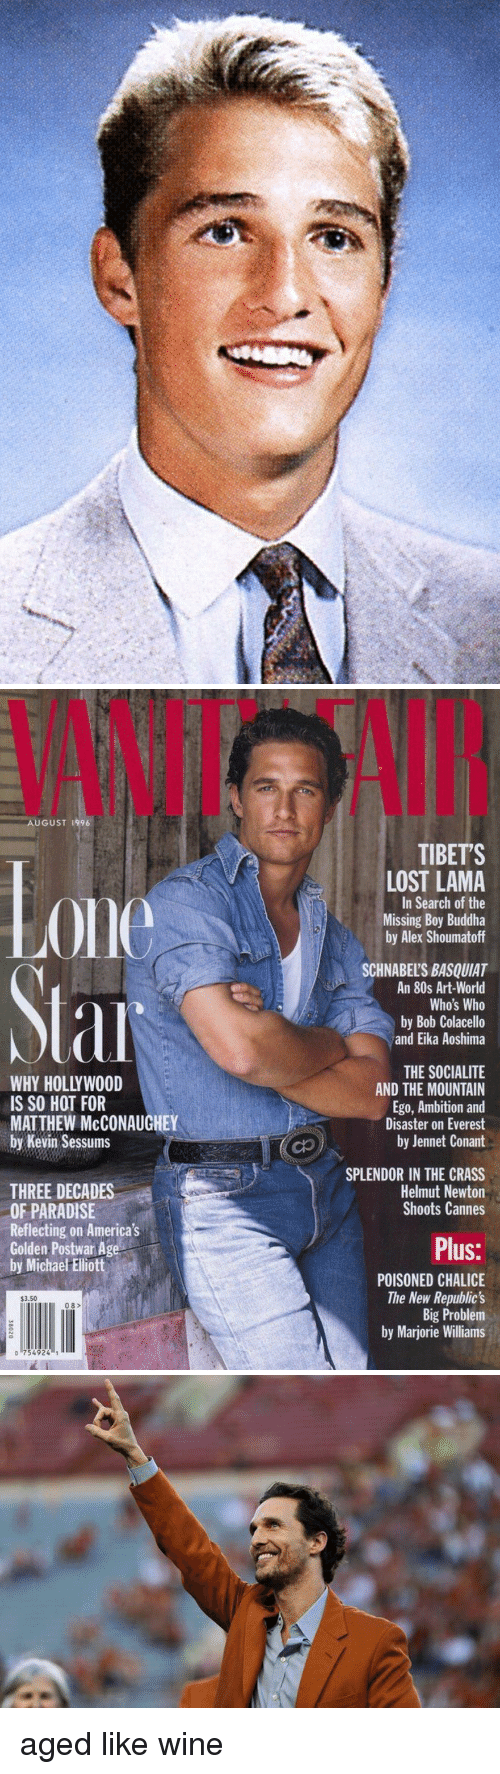 80s, Matthew McConaughey, and Paradise: AUGUST 1996  IS SO HOT FOR  MATTHEW McCONAUGHEY  by Kevin Sessums  THREE DECADES  OF PARADISE  Reflecting on America's  Golden Postwar Age  by Michael Elliott  $3.50  mull II 08  0 754924 1  TIBETS  LOST LAMA  In Search of the  Missing Boy Buddha  by Alex Shoumatoff  SCHNABELSBASQUIAT  An 80s Art-World  Who's Who  by Bob Colacello  and Eika Aoshima  THE SOCIALITE  AND THE MOUNTAIN  Ego, Ambition and  Disaster on Everest  by Jennet Conant  SPLENDOR IN THE CRASS  Helmut Newton  Shoots Cannes  Plus:  POISONED CHALICE  The New Republic's  Big Problem  by Marjorie Williams aged like wine